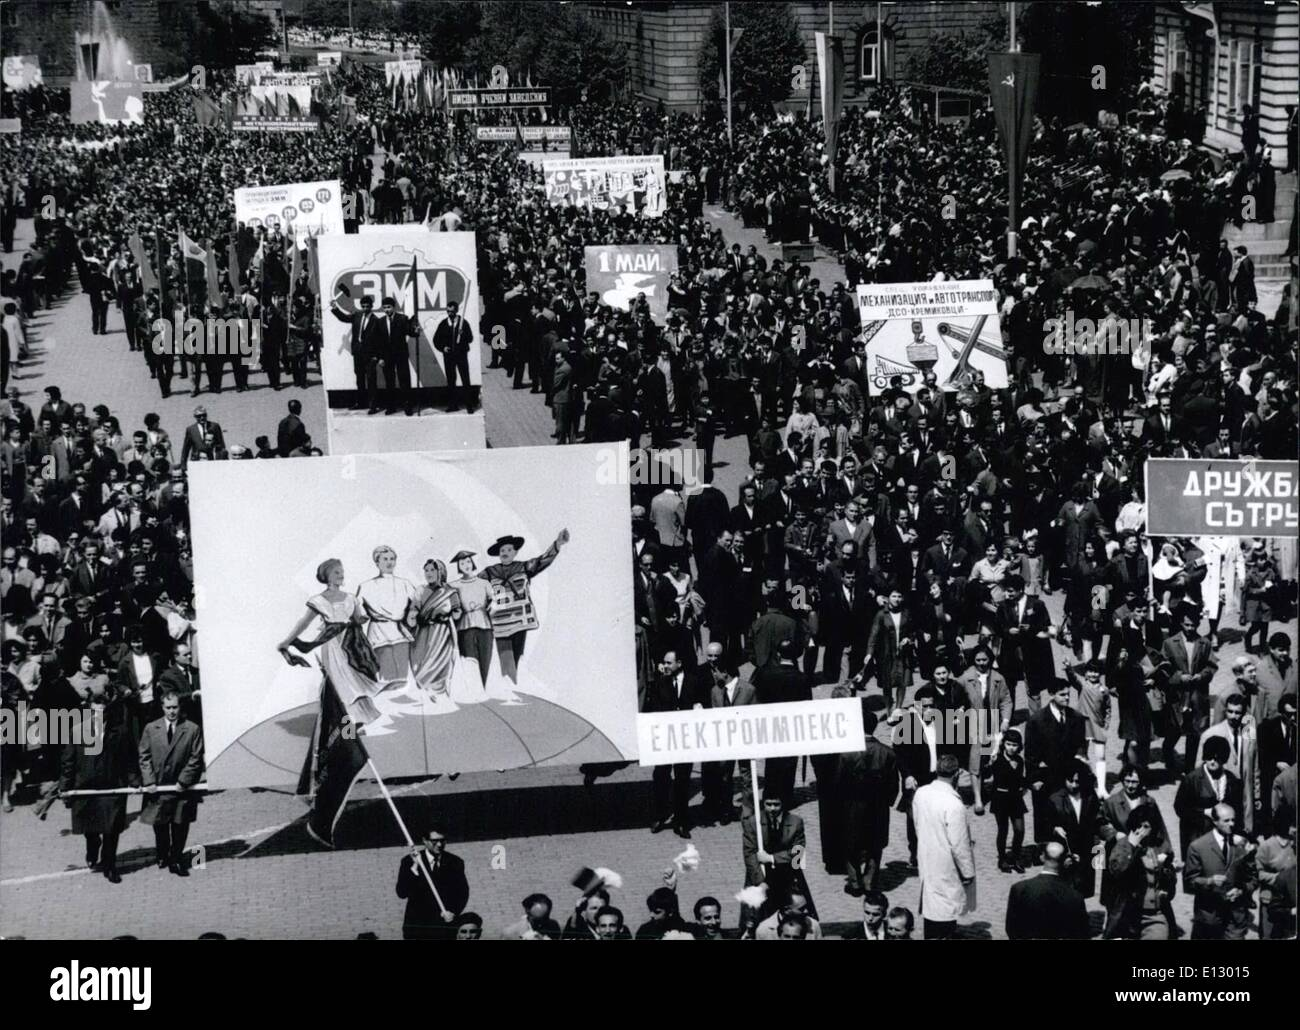 Feb. 25, 2012 - May day in Bulgaria 1967 : During the working people demonstration. - Stock Image